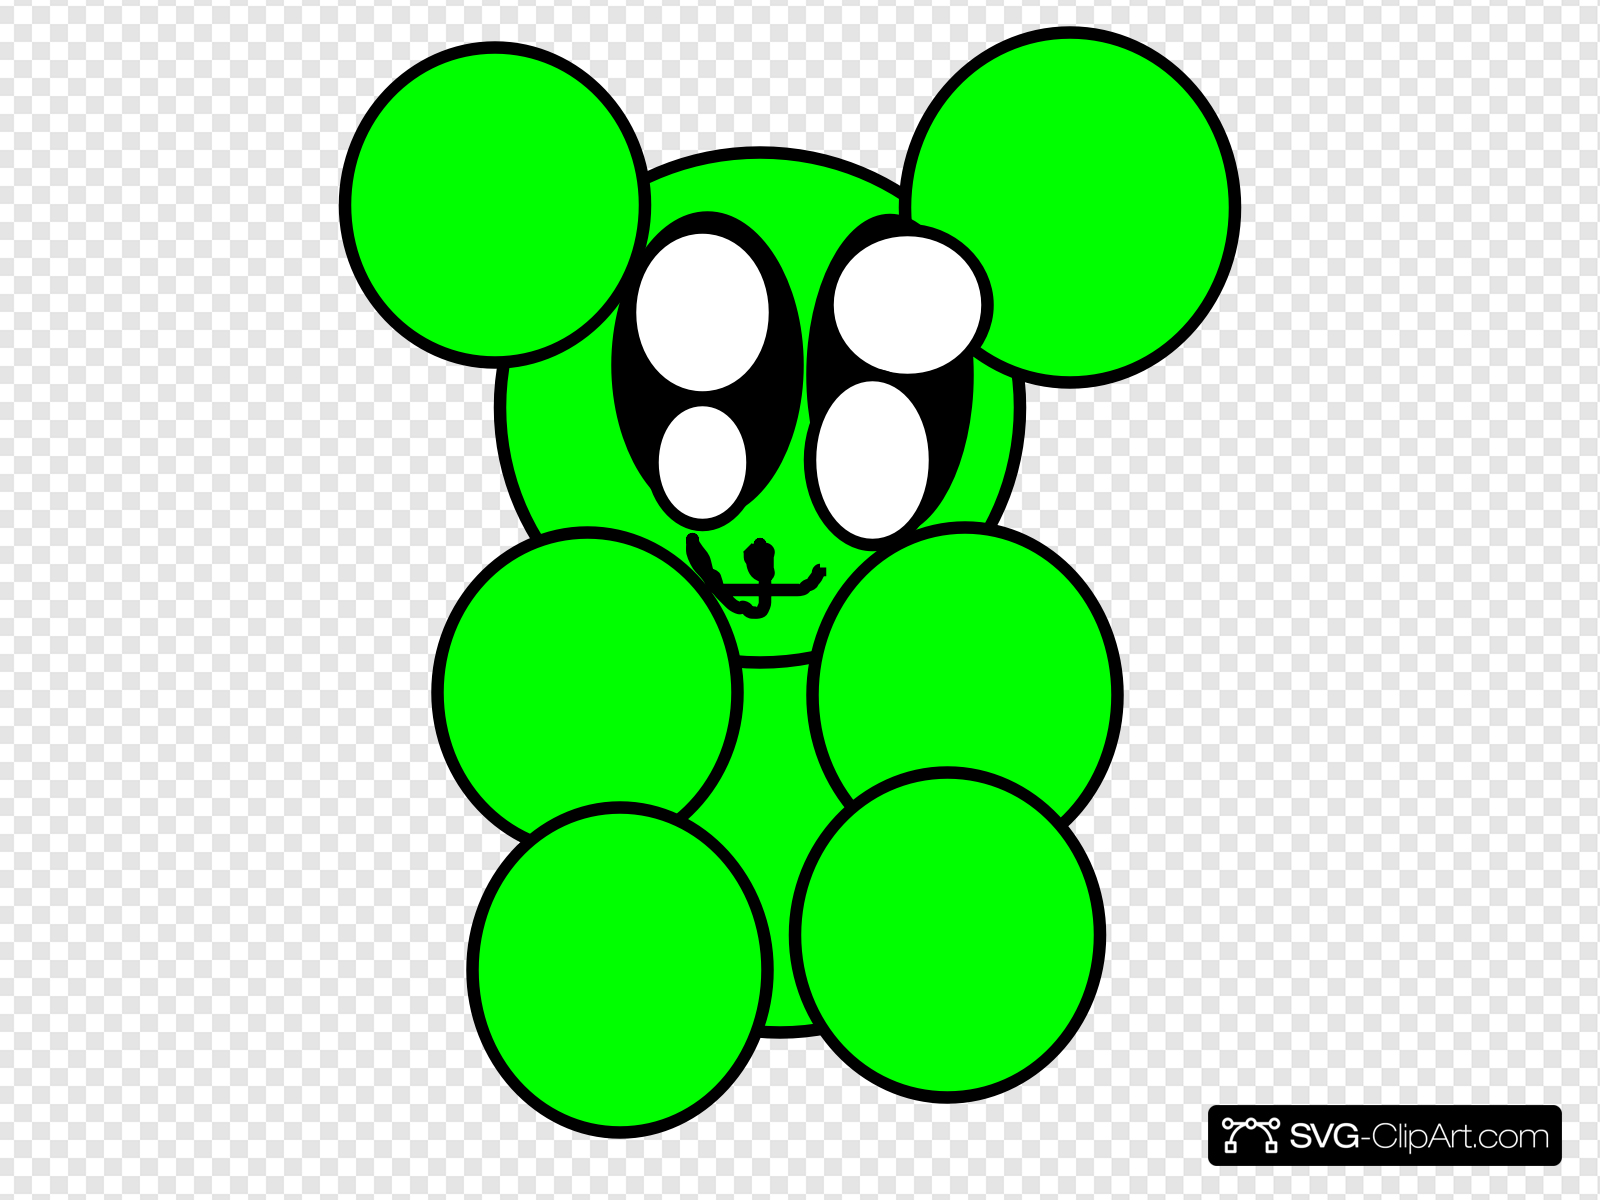 Pa clipart freeuse library Gummy Bear Green Pa Clip art, Icon and SVG - SVG Clipart freeuse library